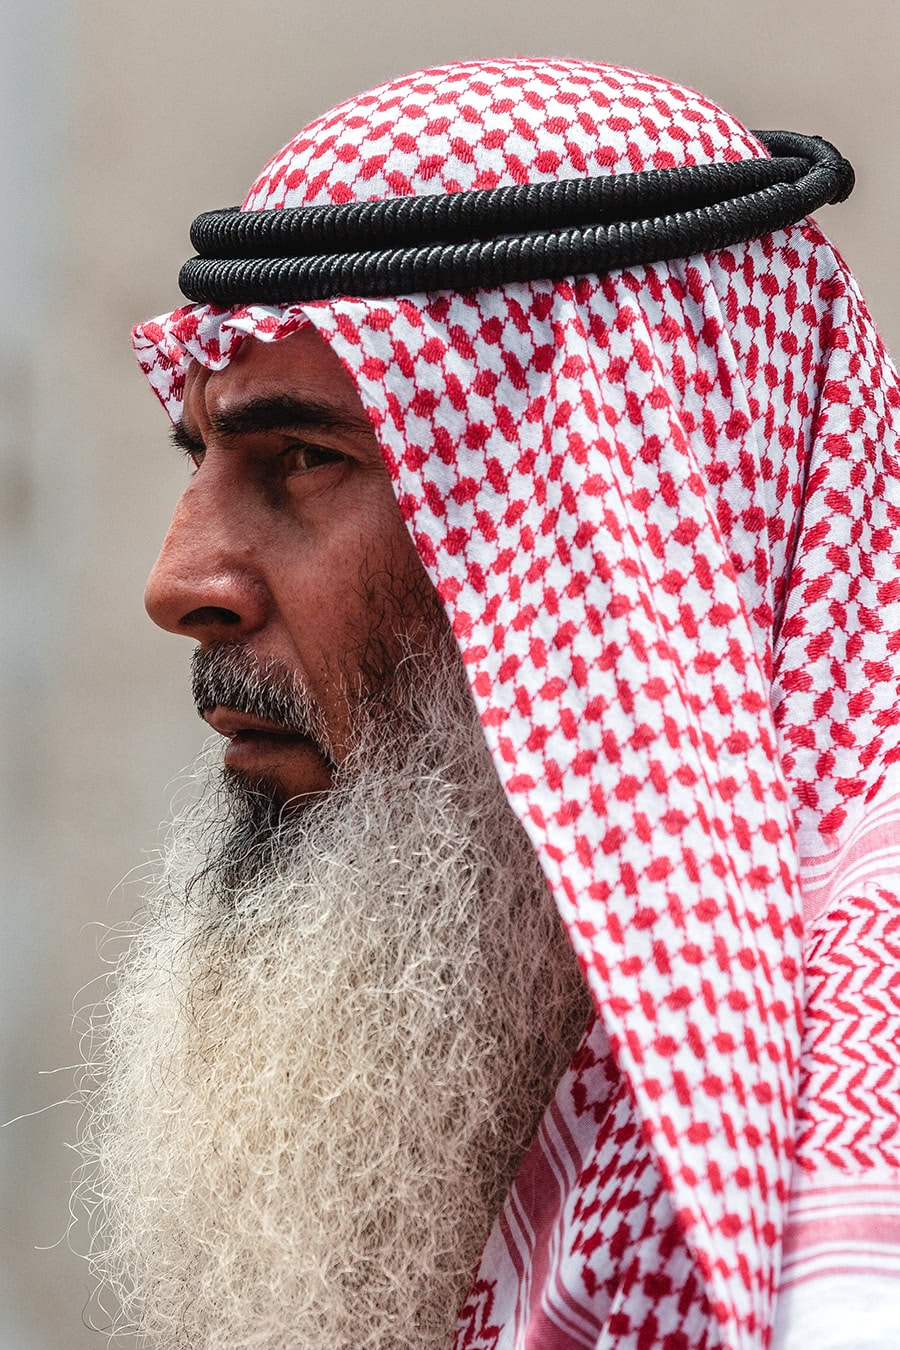 An Emirati man walking through the Al Ain market.